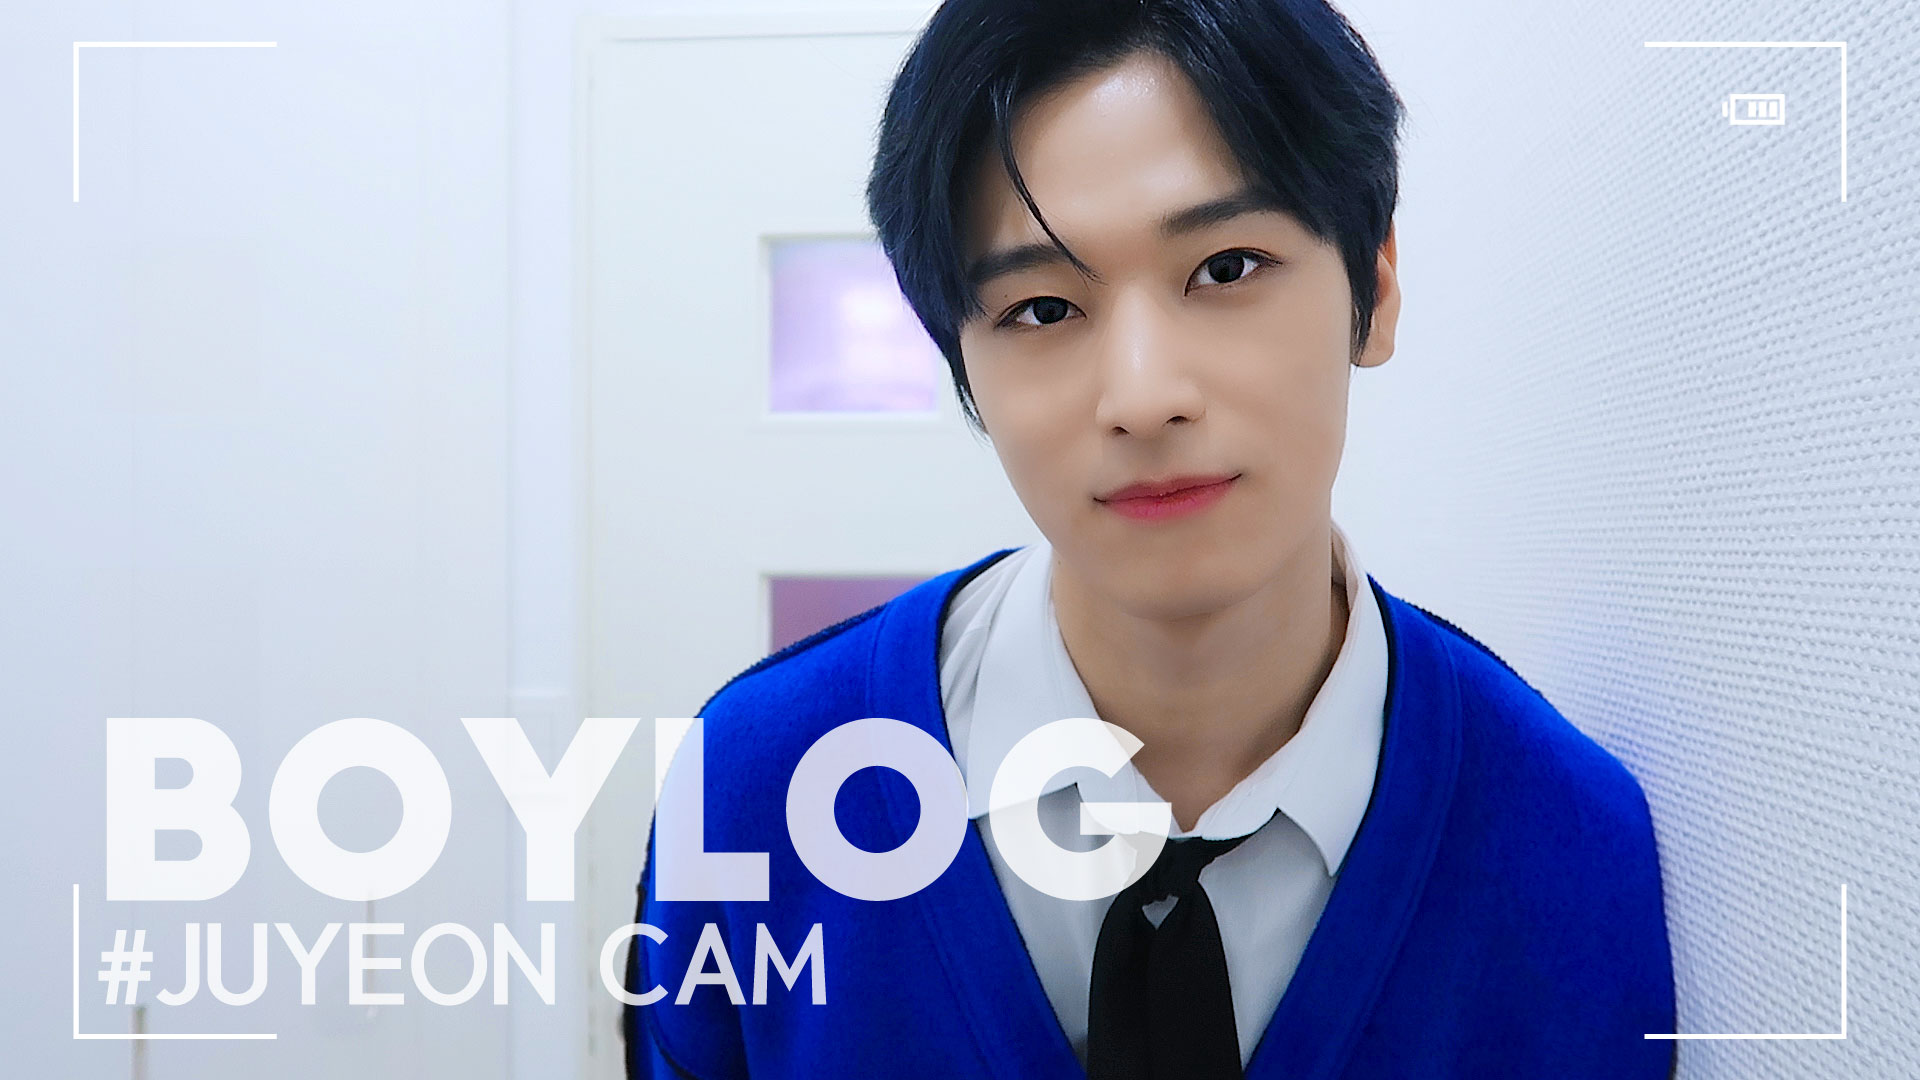 [BOYLOG] JUYEON CAM |THE SHOW MC Behind